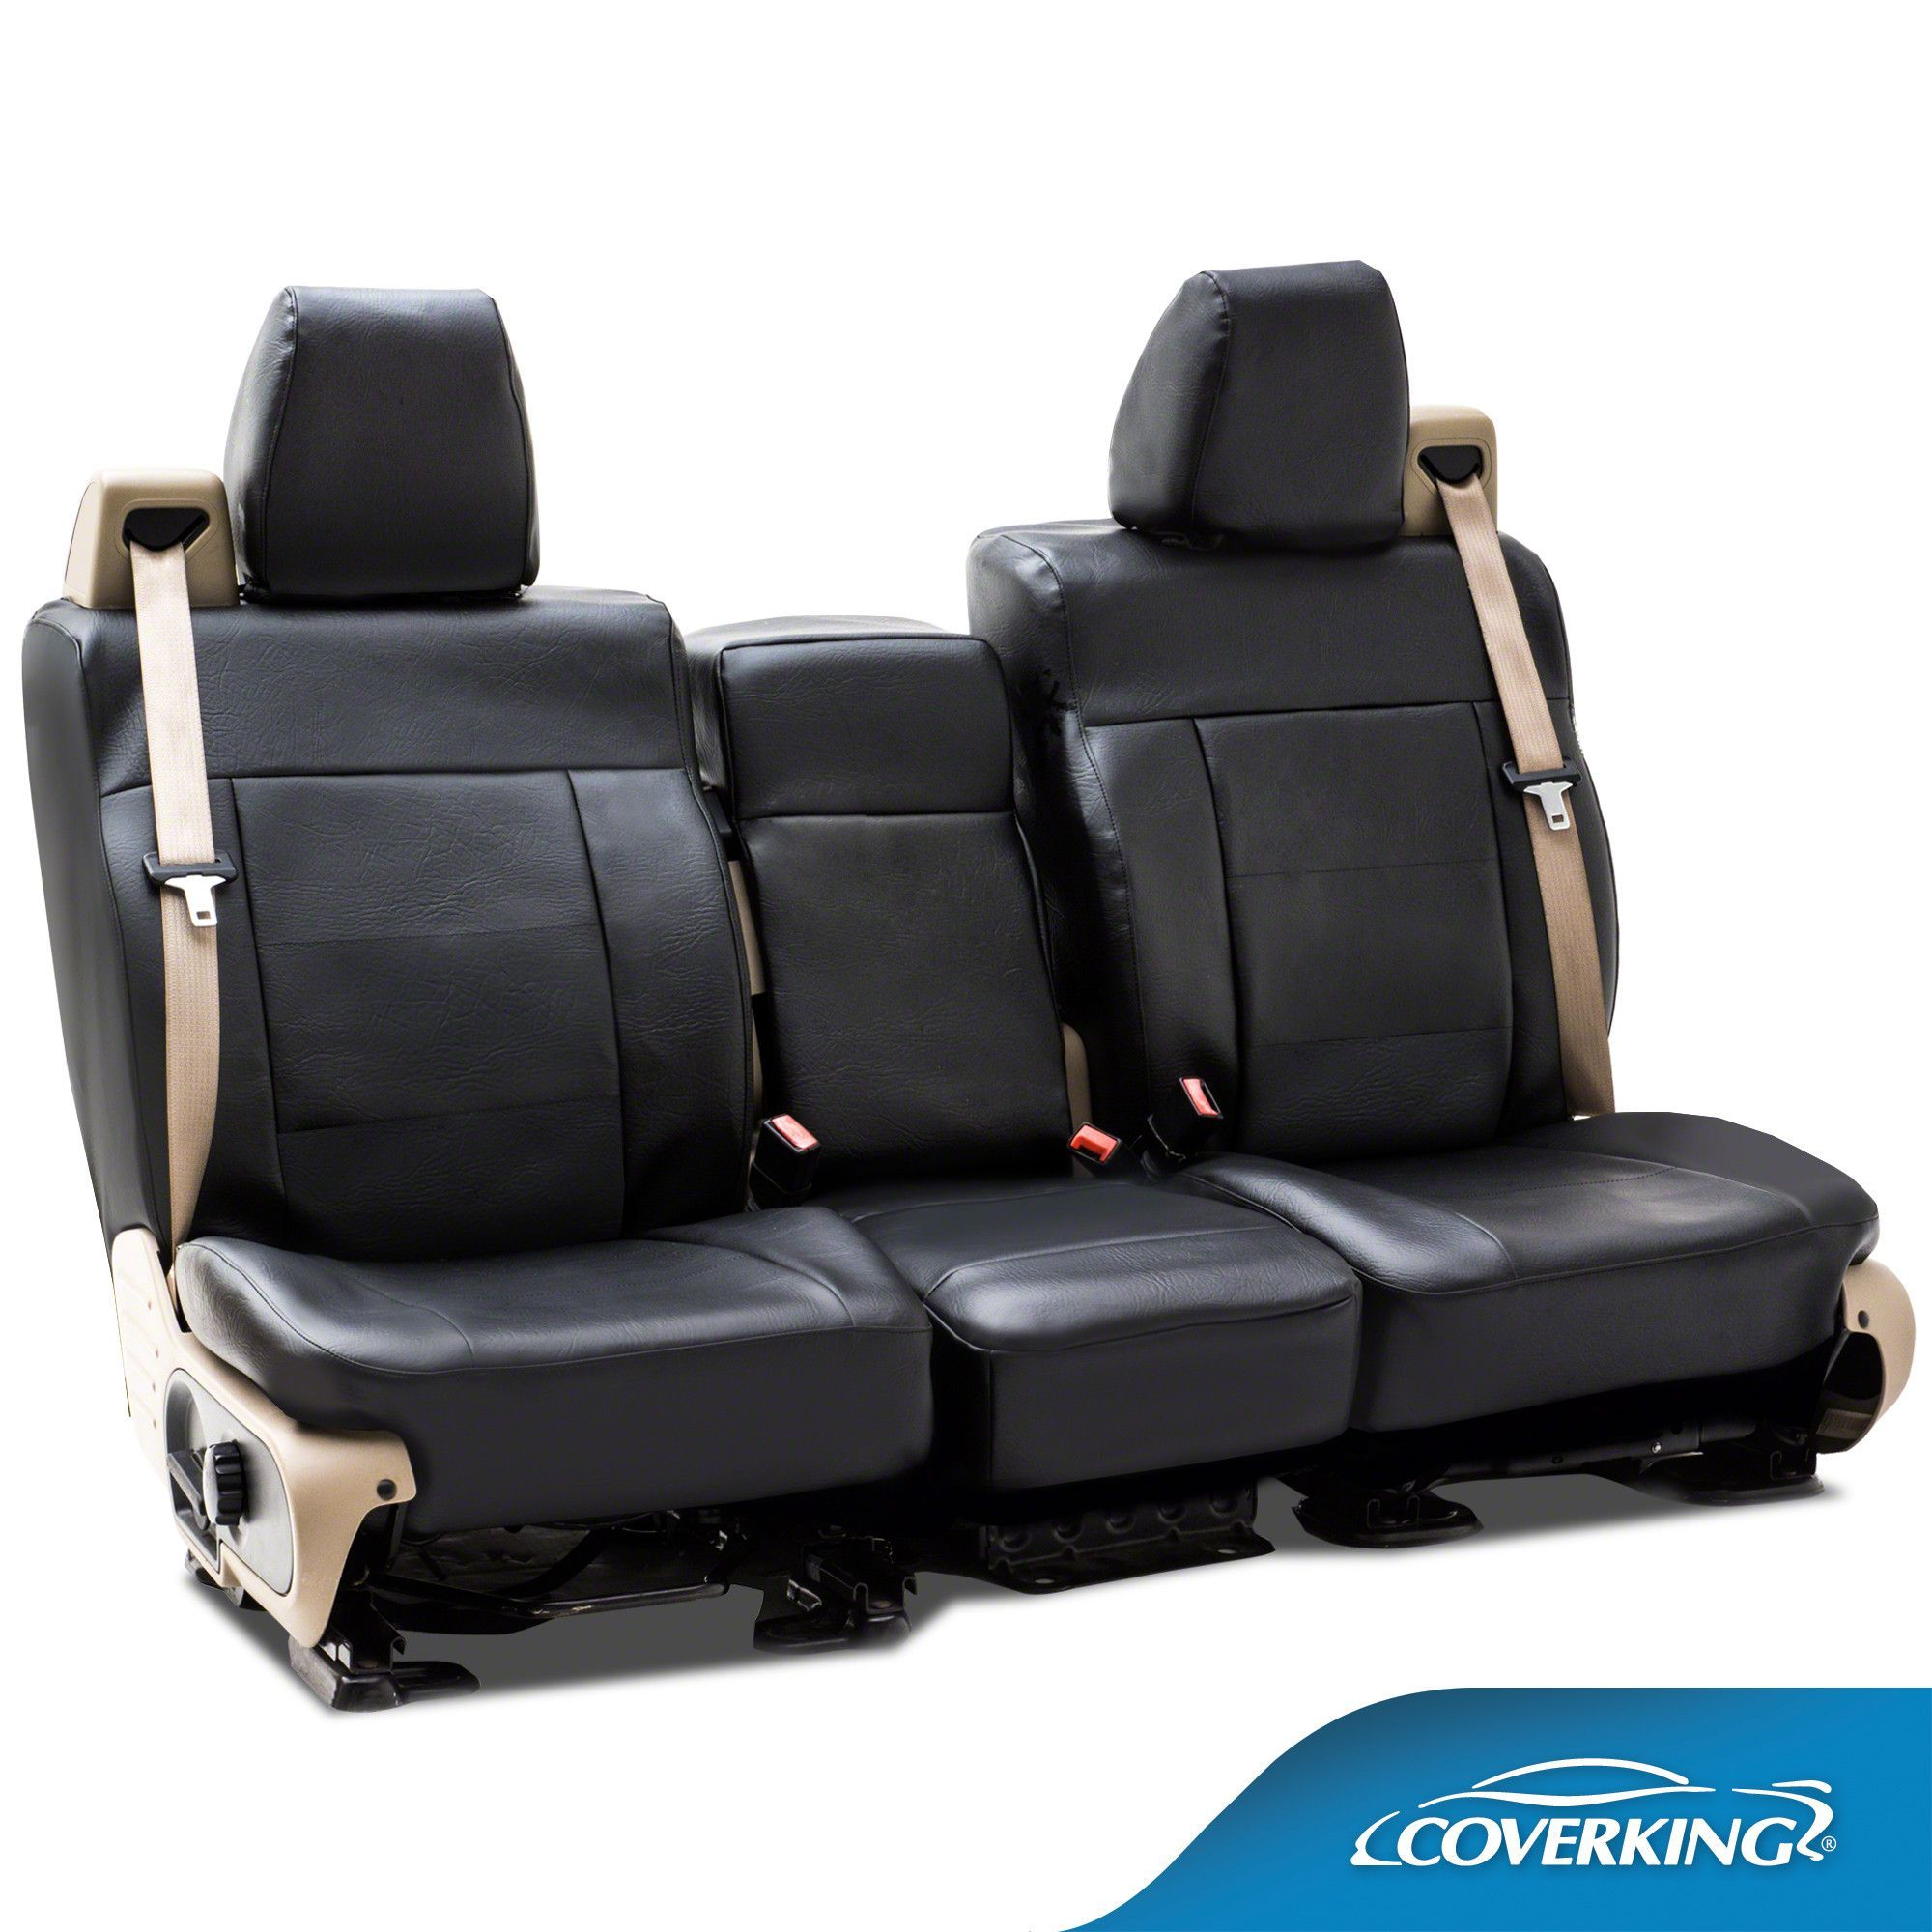 Coverking rhinohide custom fit front seat covers for chevrolet